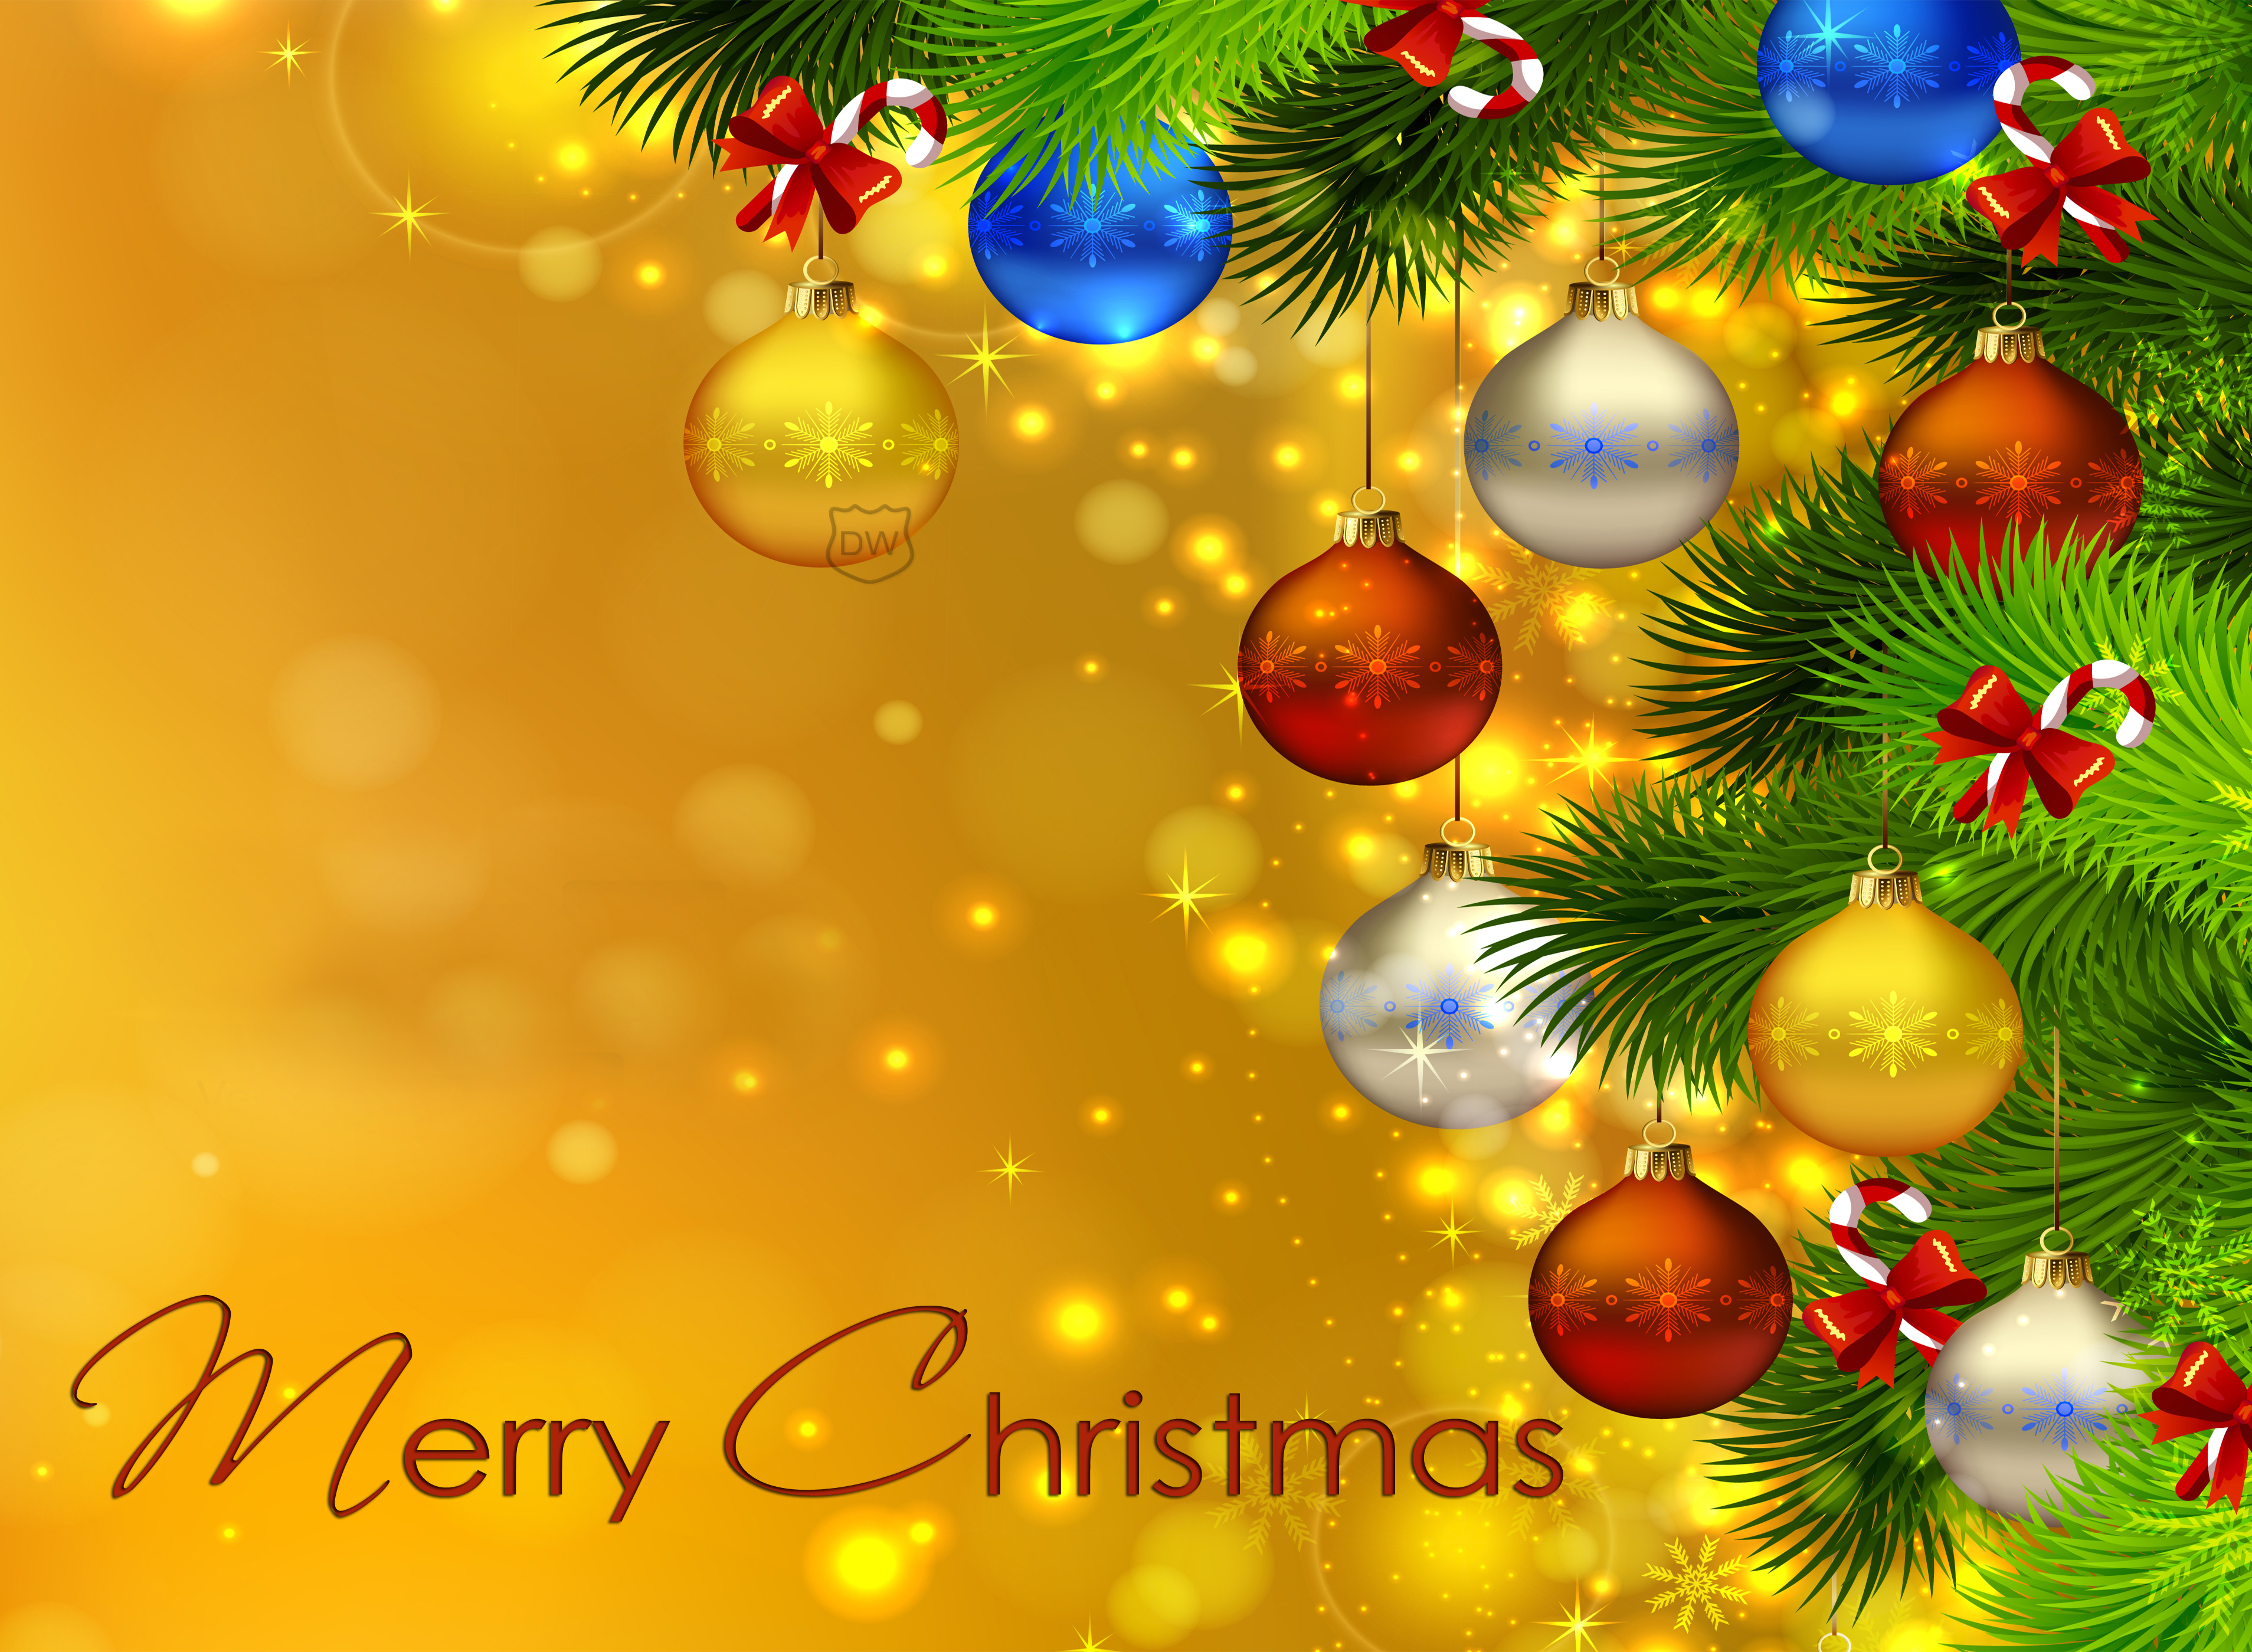 merry christmas wallpapers yellow - hd desktop wallpapers | 4k hd